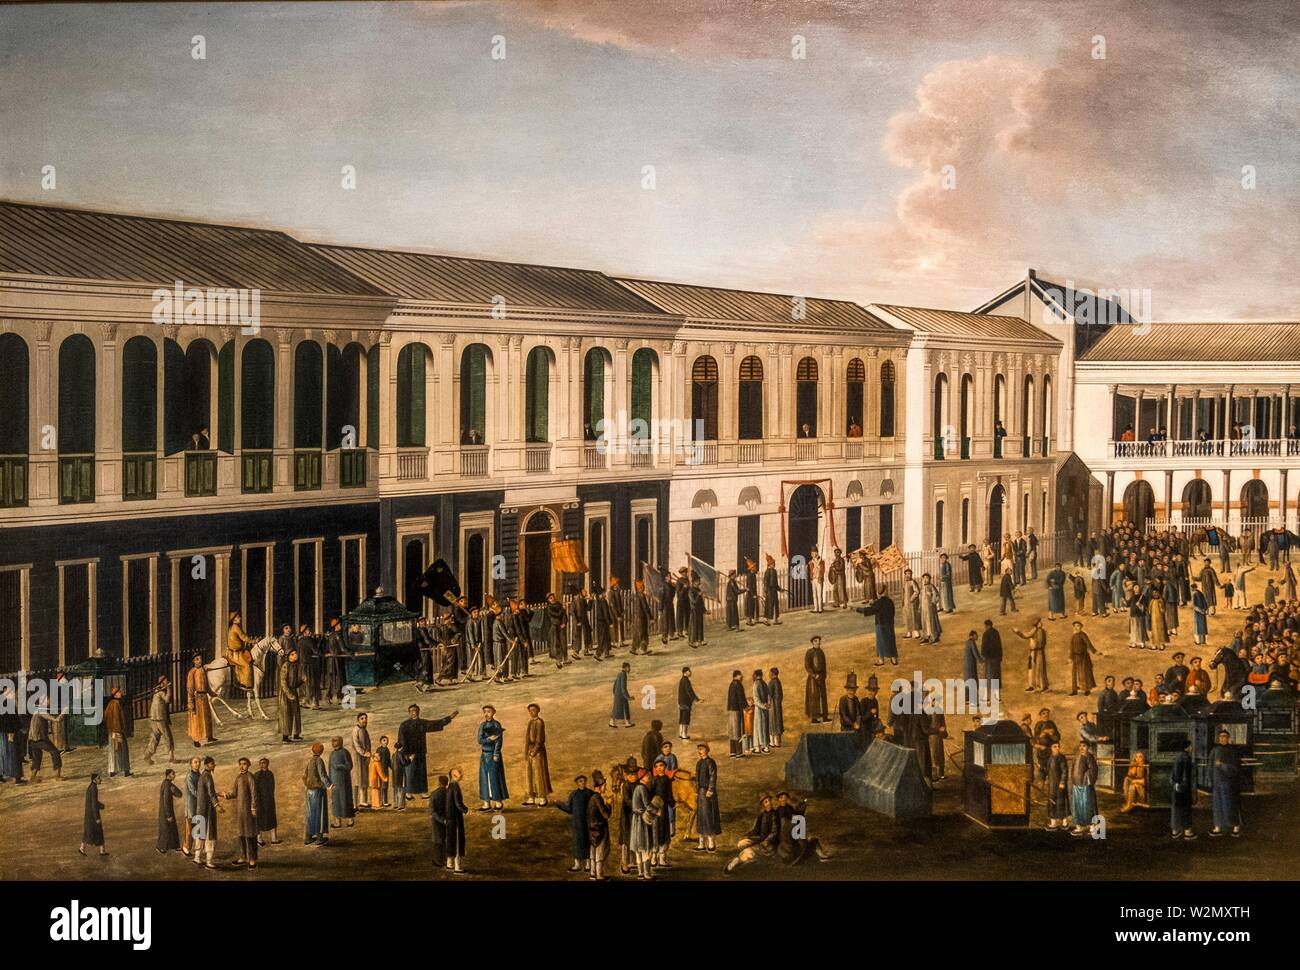 Singapore, Asian Civilisations Museum:.Officials assembling for a trial at the hongs of Canton..(China, Guangzhou, around 1807).Oil on canvas. - Stock Image